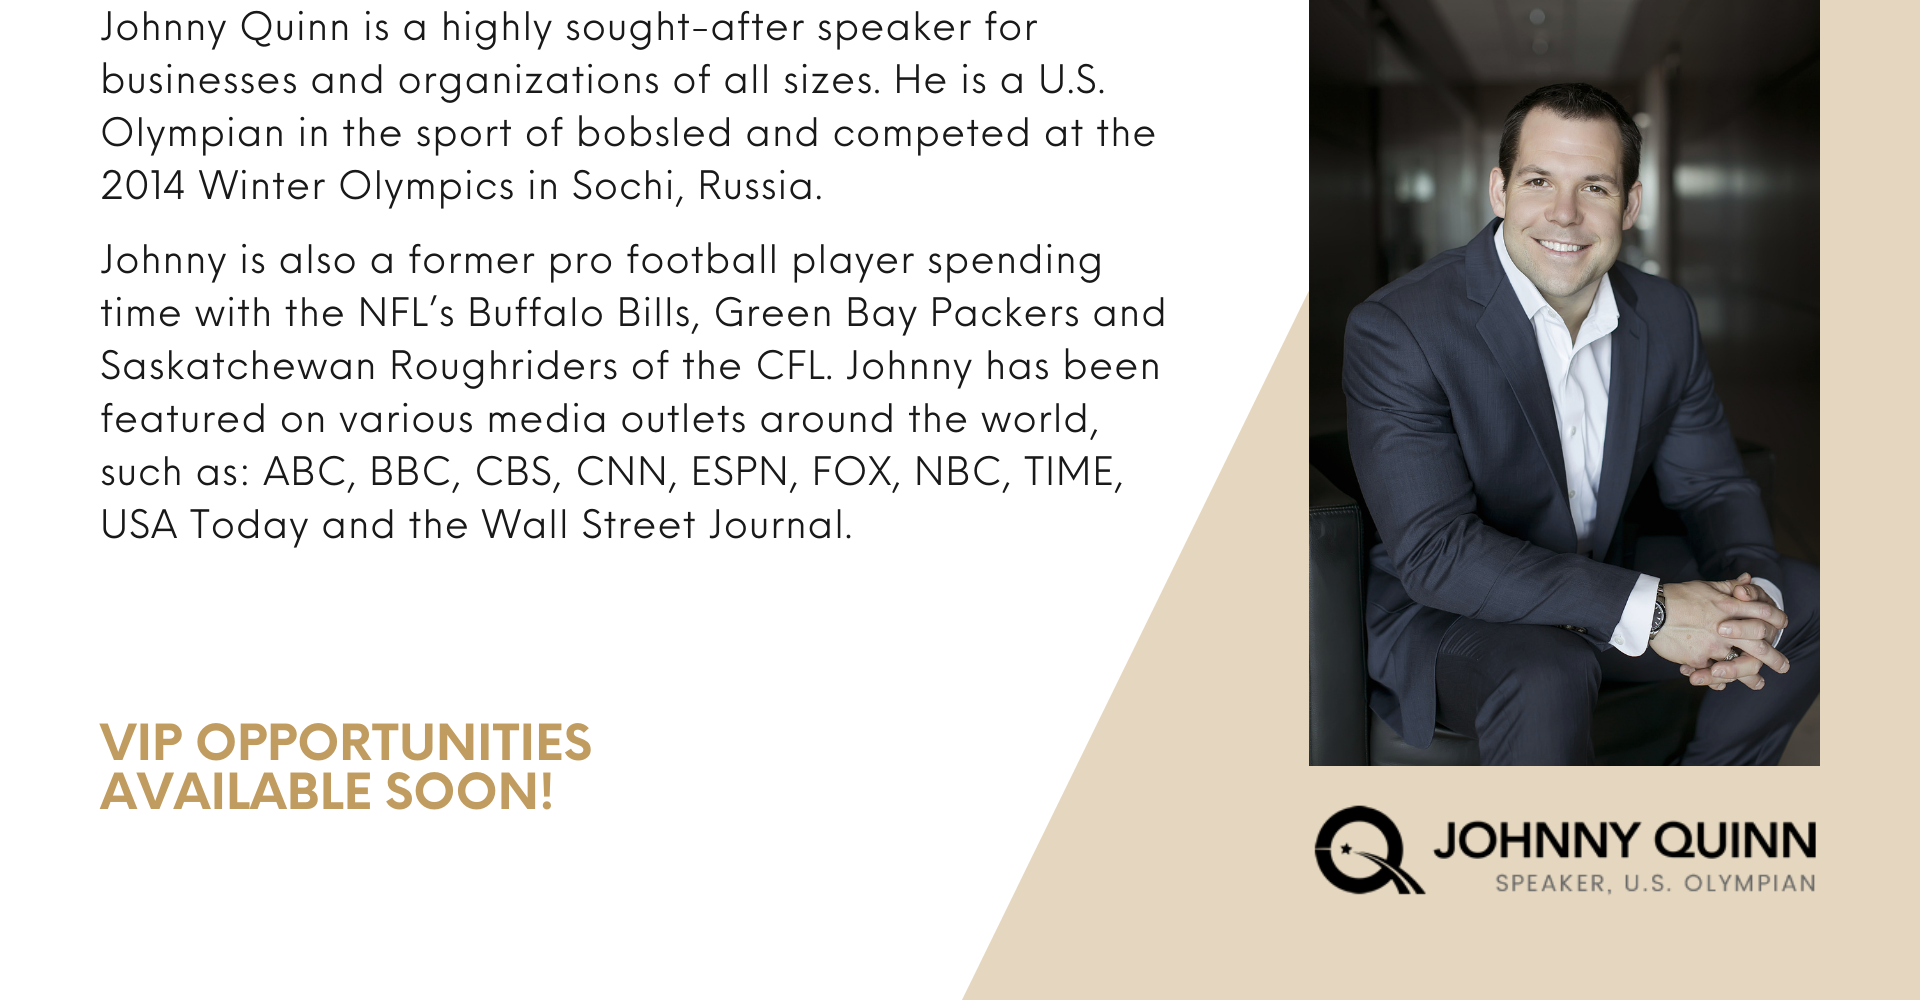 Johnny Quinn is a highly sought-after speaker for businesses and organizations of all sizes. He is a U.S. Olympian in the sport of bobsled and competed at the 2014 Winter Olympics in Sochi, Russia.  Johnny is also a former pro football player spending time with the NFL's Buffalo Bills, Green Bay Packers and Saskatchewan Roughriders of the CFL. Johnny has been featured on various media outlets around the world, such as: ABC, BBC, CBS, CNN, ESPN, FOX, NBC, TIME, USA Today and the Wall Street Journal.